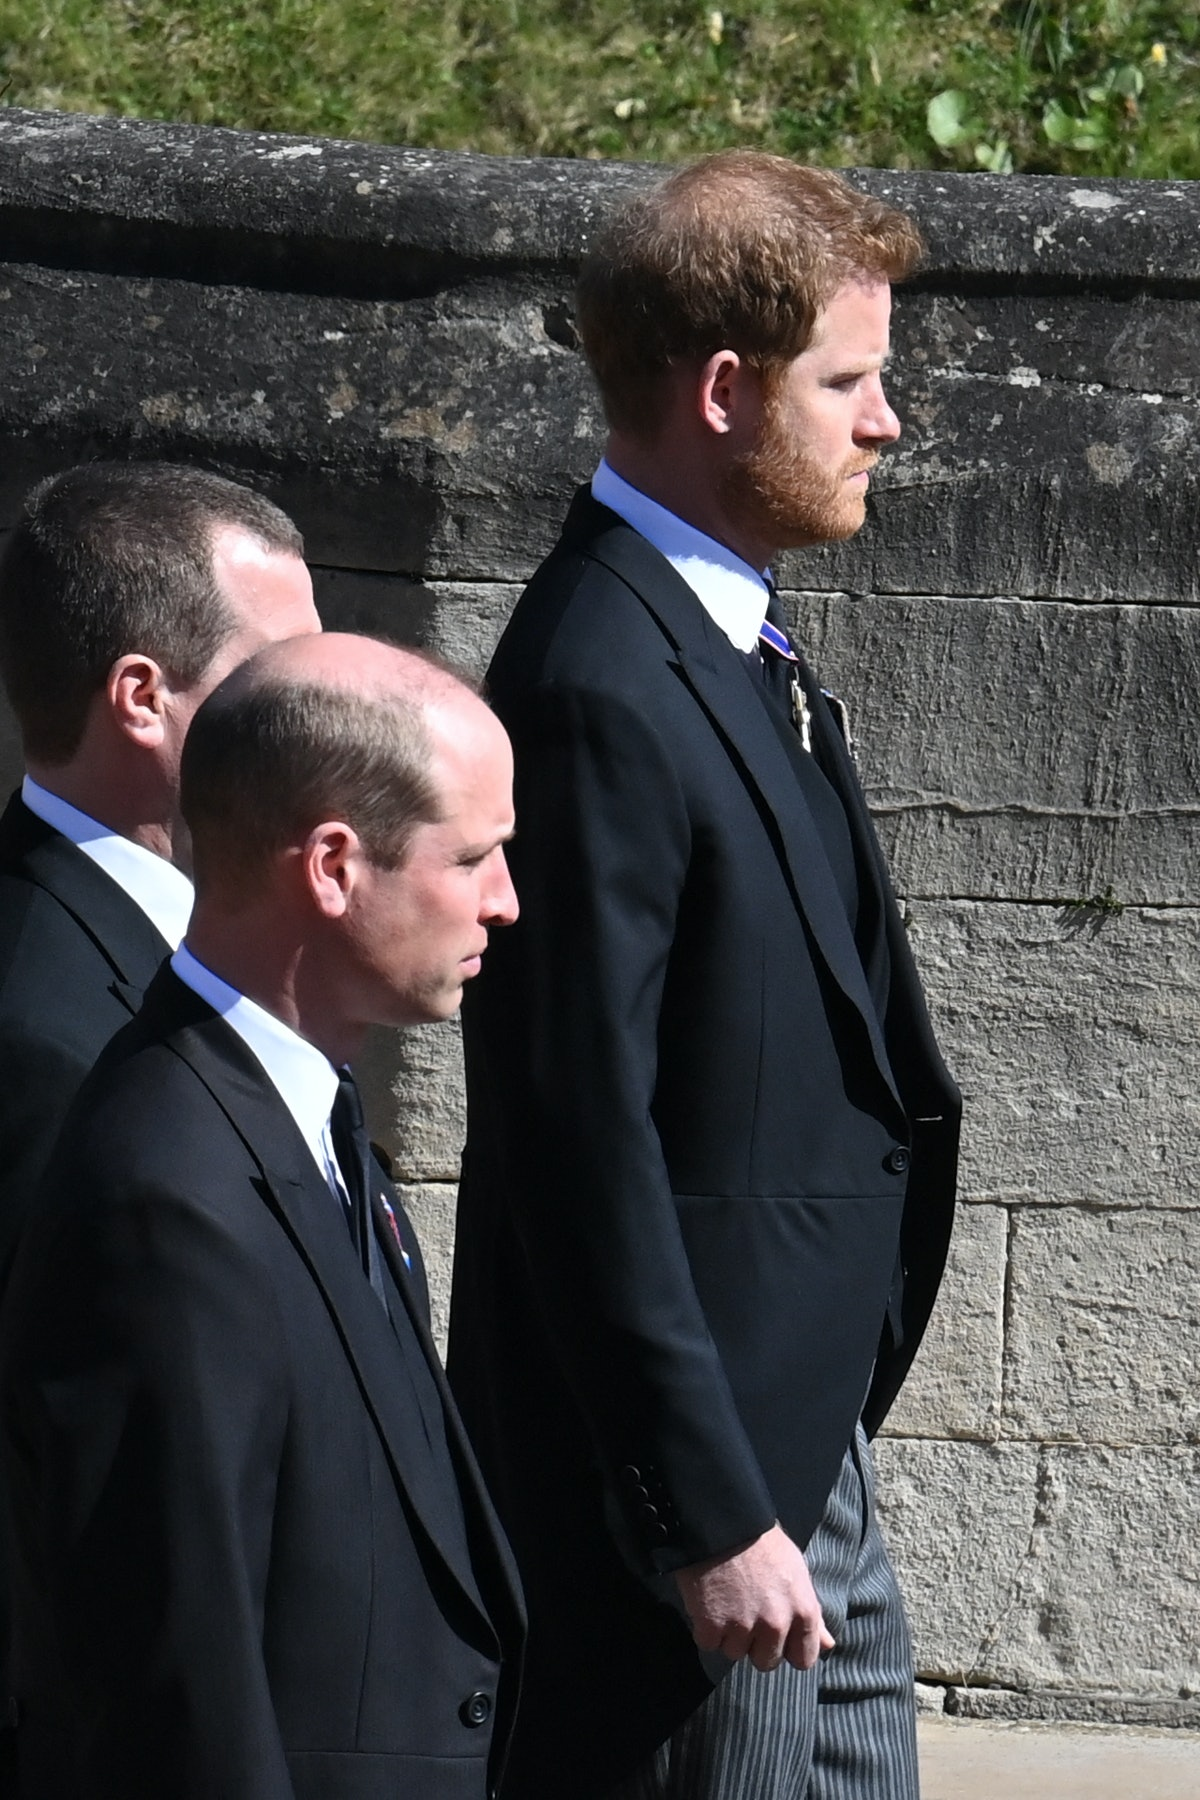 Photos of Prince William and Harry's reunion at Prince Philip's funeral represent a long-awaited mom...